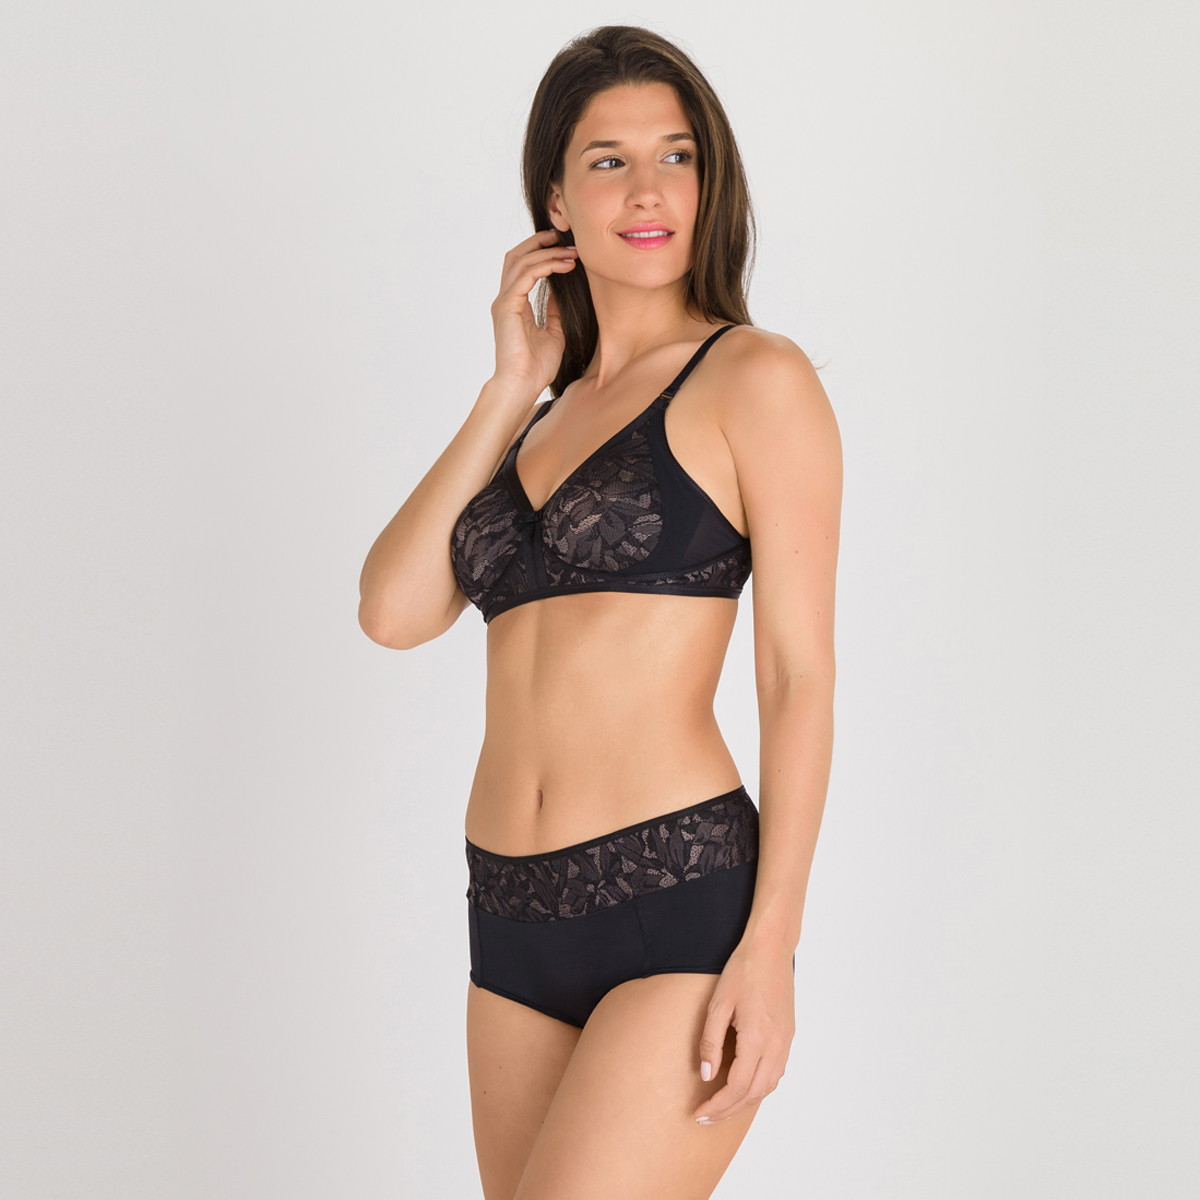 Non-wired Bra in Black and Grey - Ideal Beauty Lace, , PLAYTEX